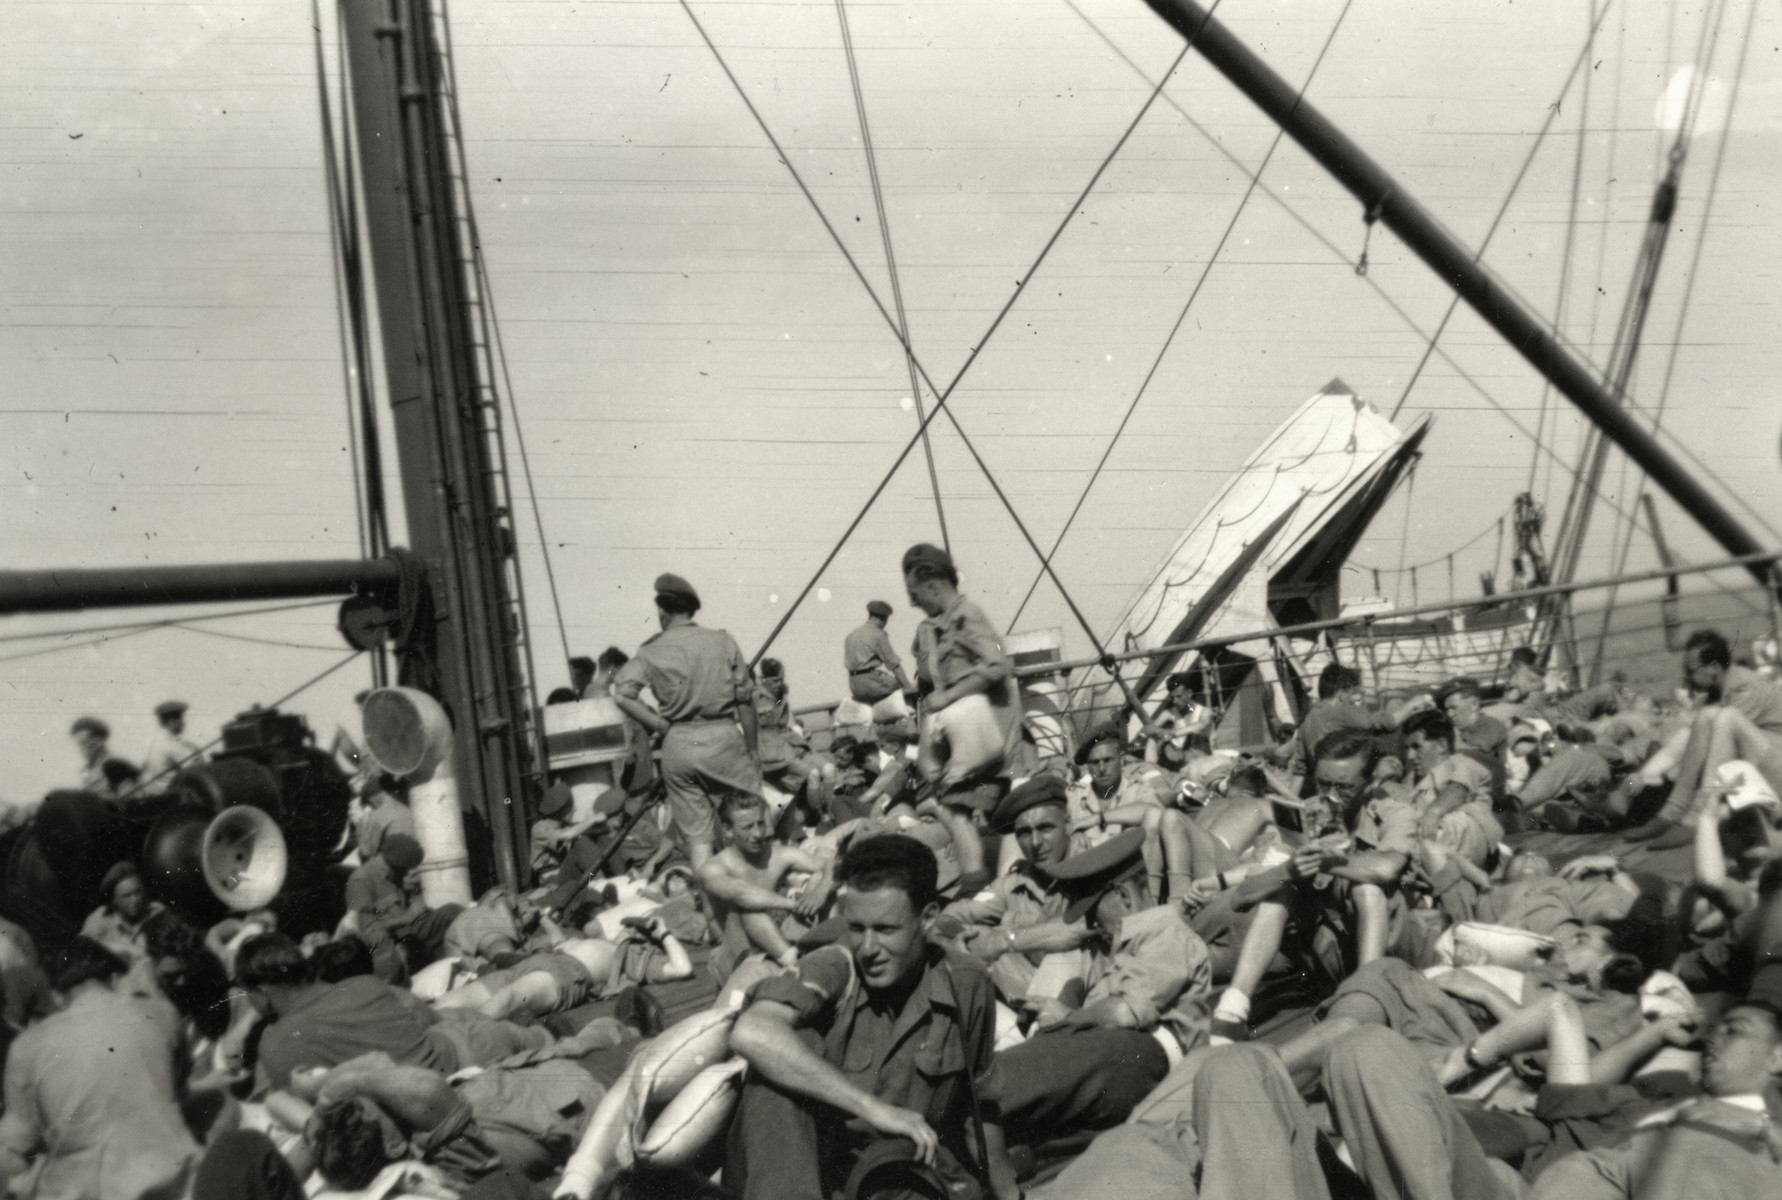 Passengers lie on the upper deck of a ship bound for Italy.